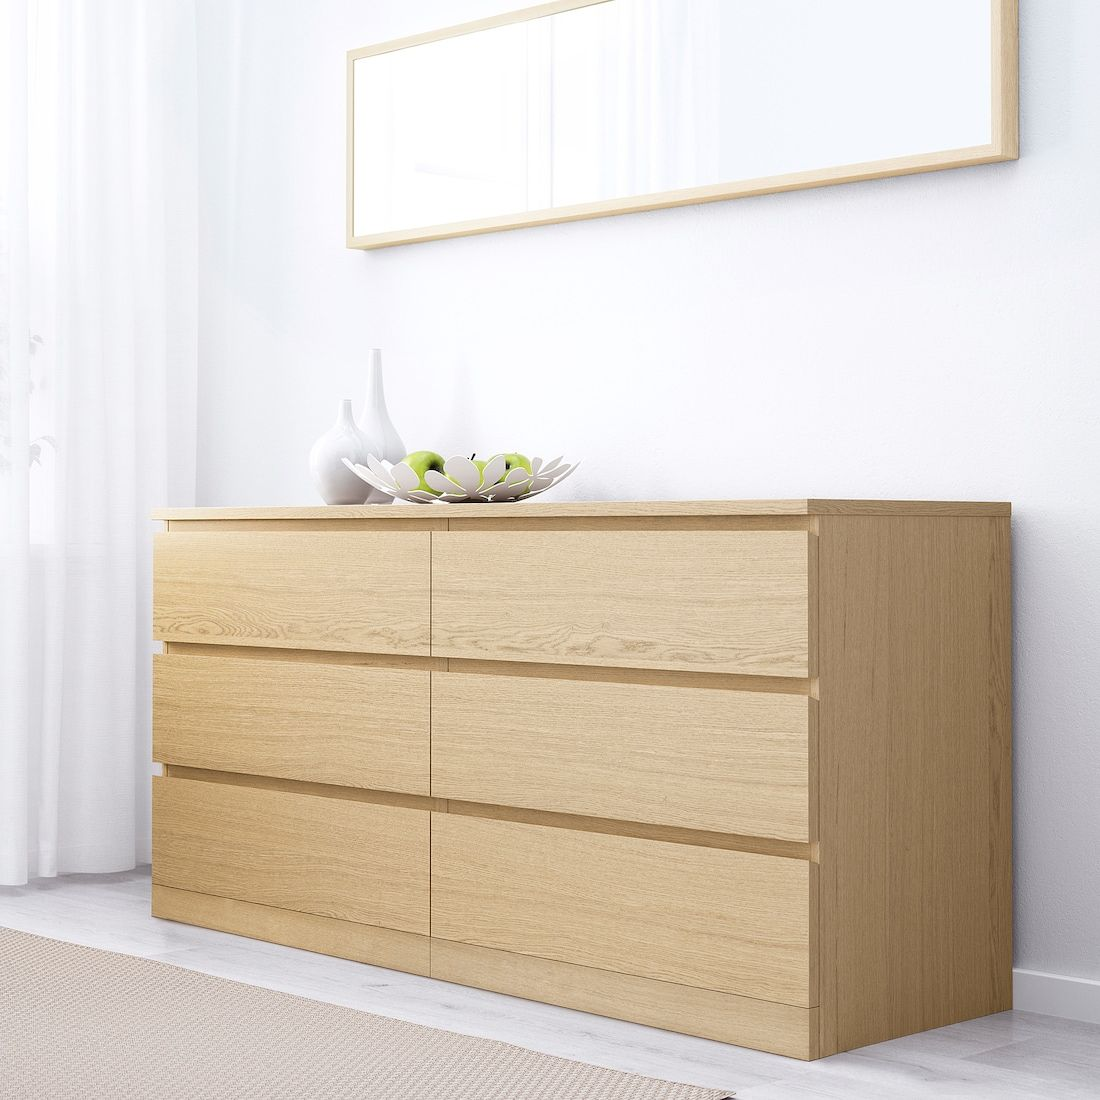 Malm 6 Drawer Dresser White Stained Oak Veneer 63x30 3 4 Ikea In 2020 6 Drawer Dresser Dresser Drawers Ikea Malm